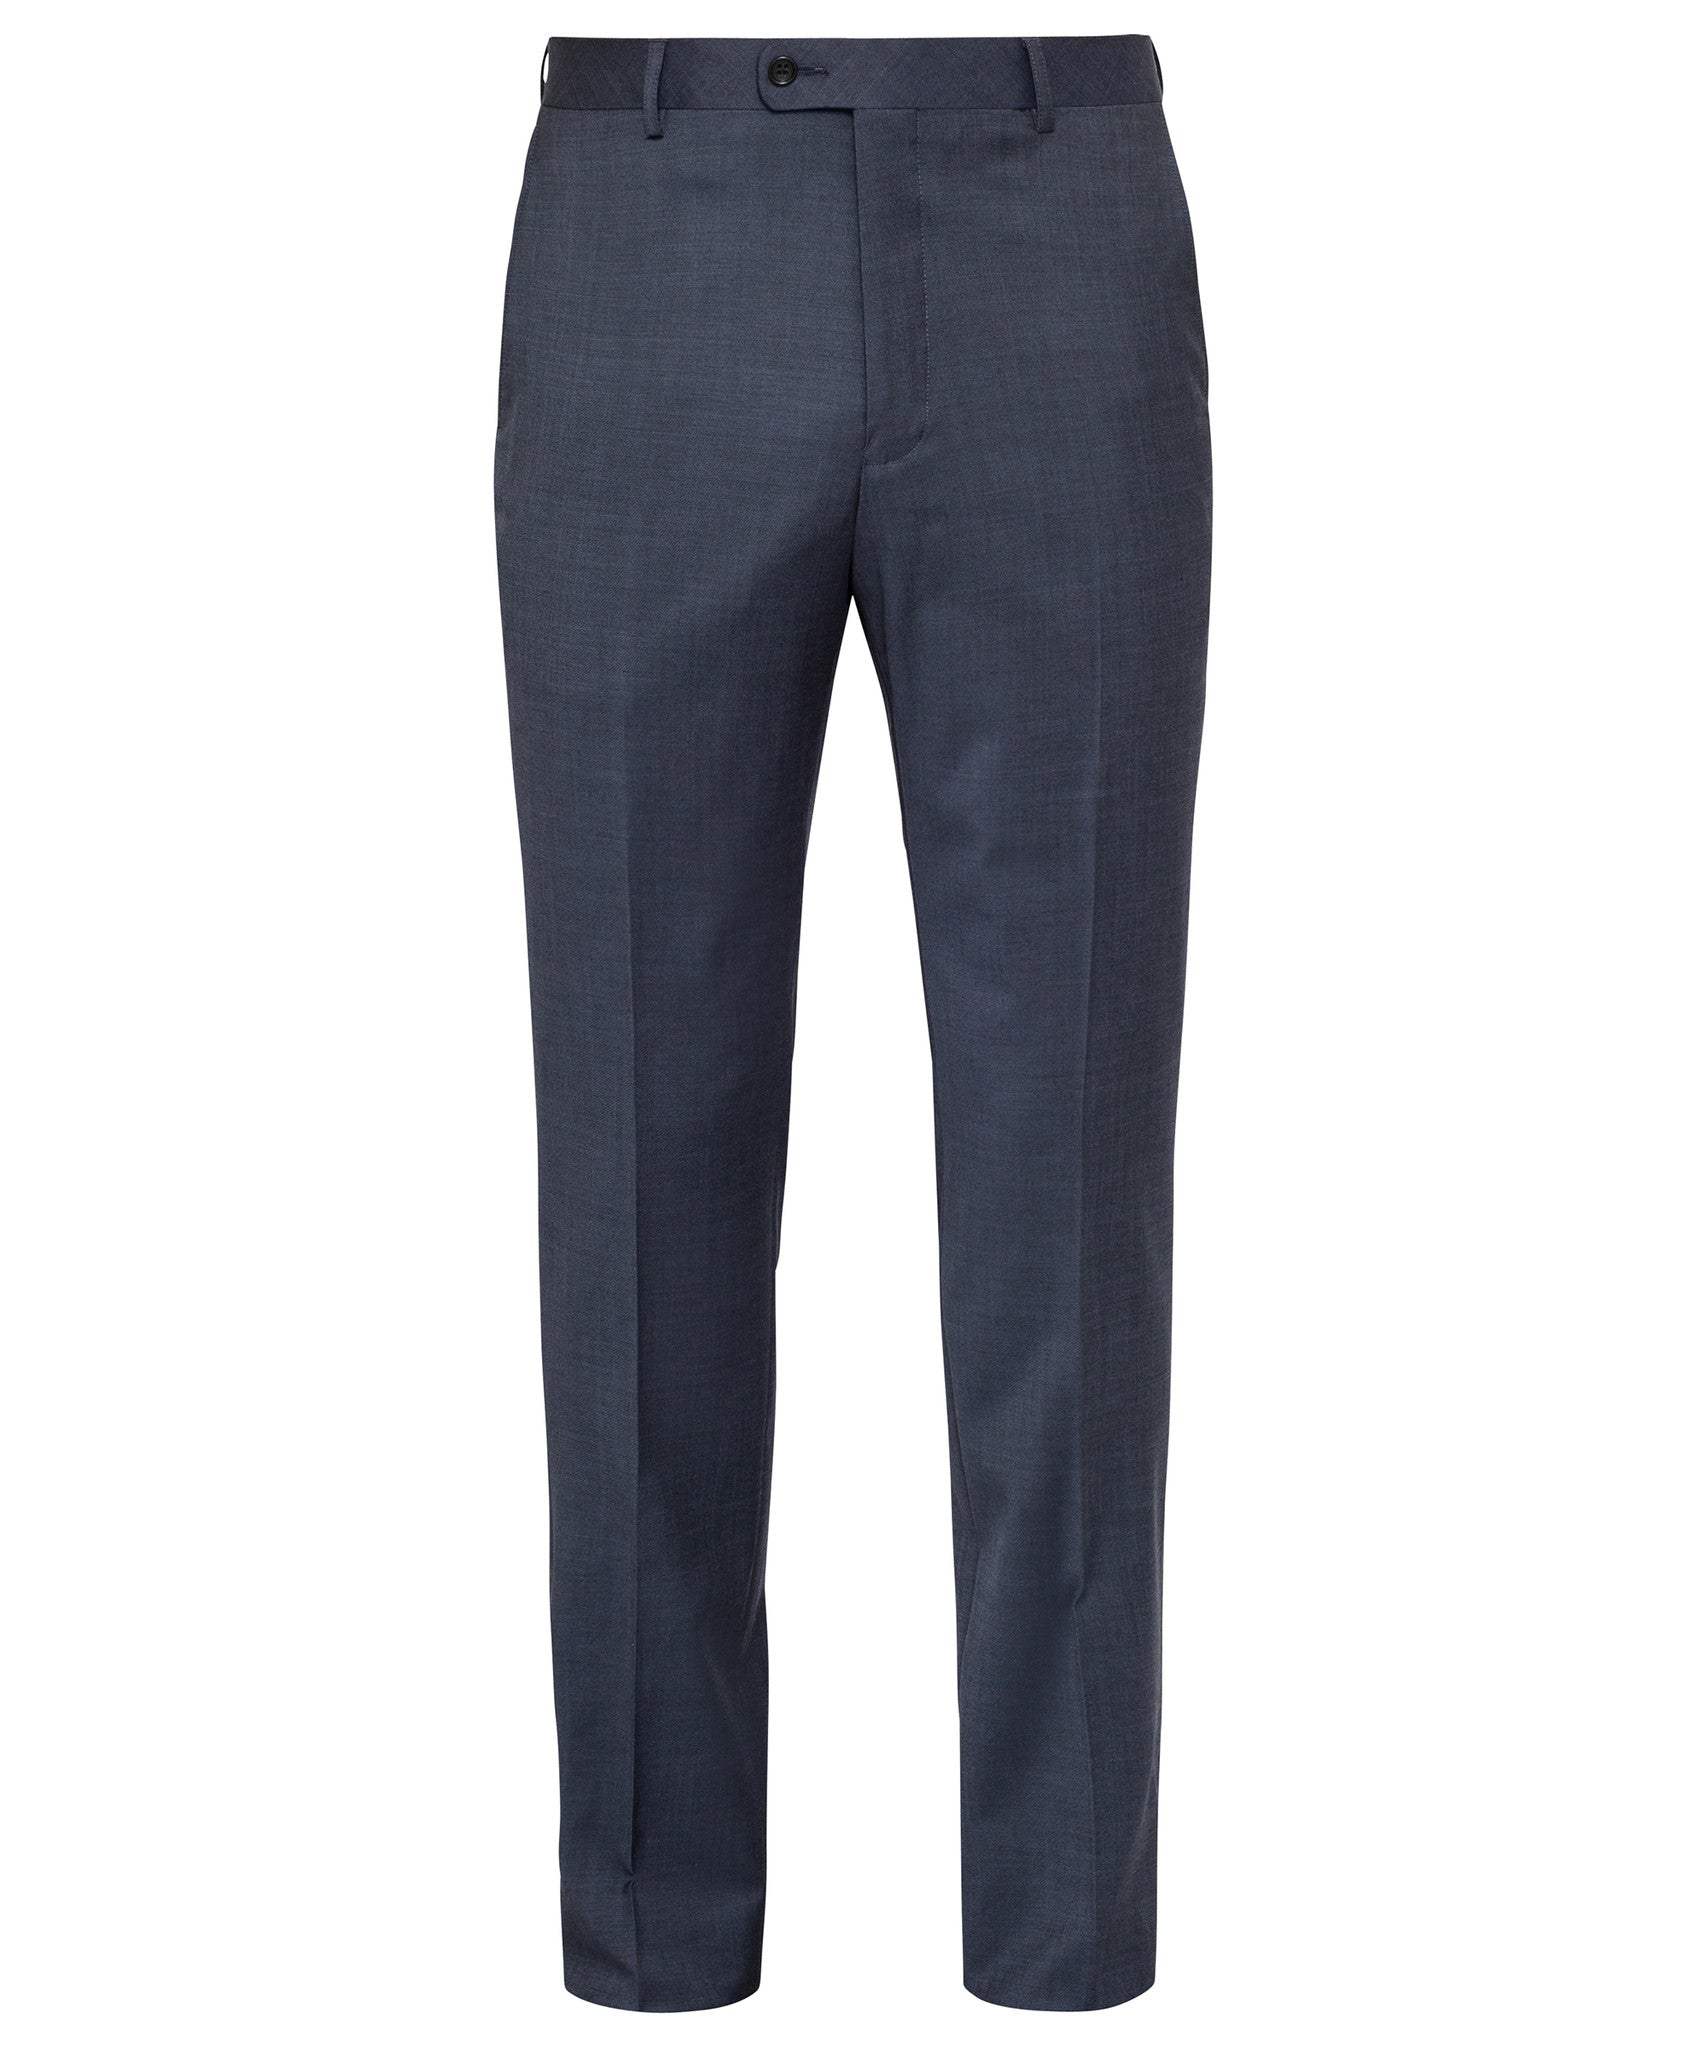 Ven Heusen Wool Blend Ink Nail Head Flat Front Trouser With Move Technology